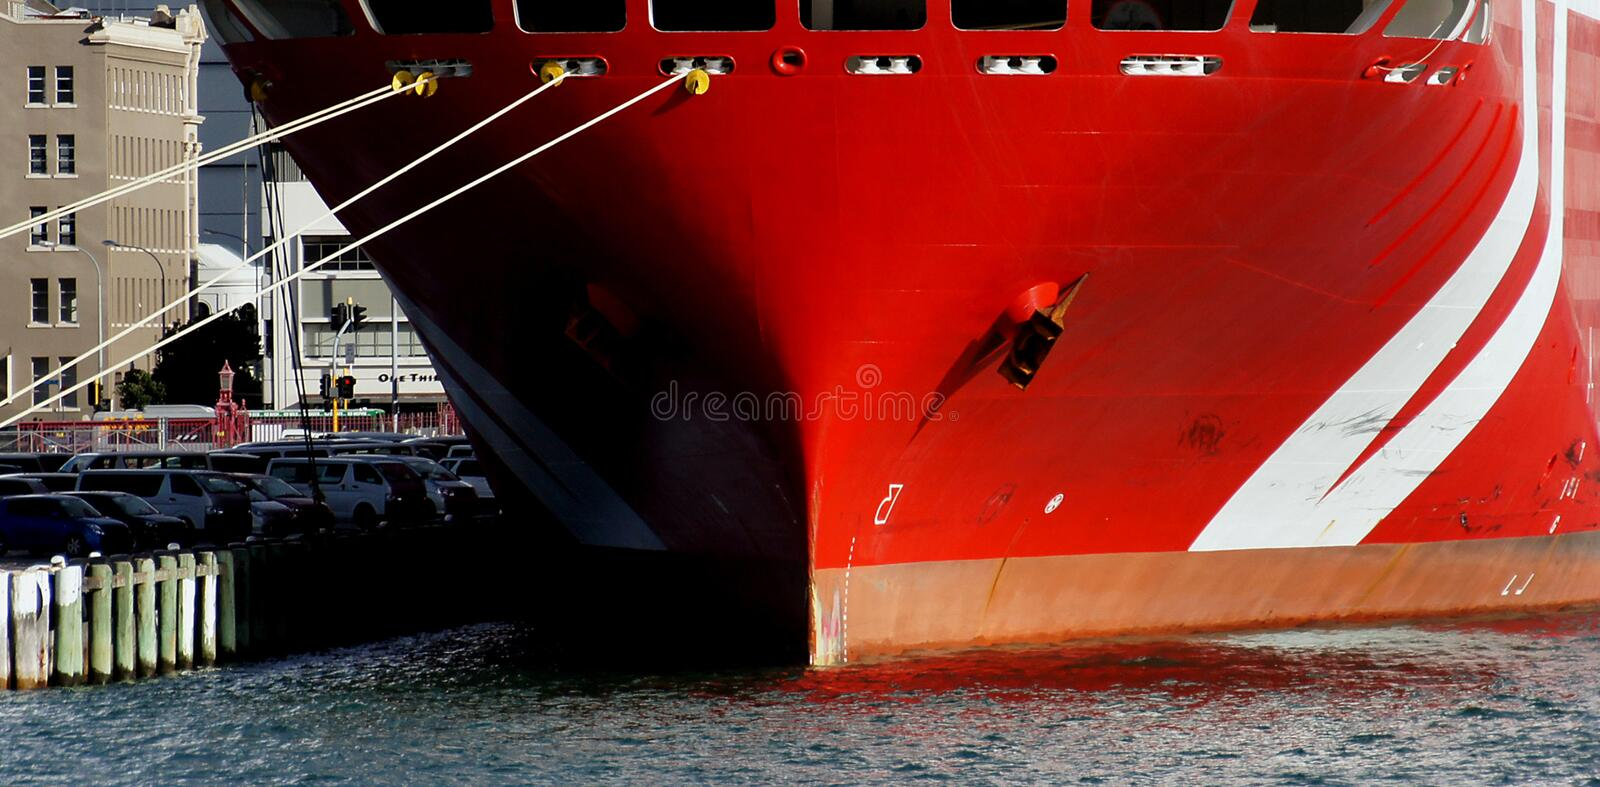 Red Boat Bow. Free Public Domain Cc0 Image